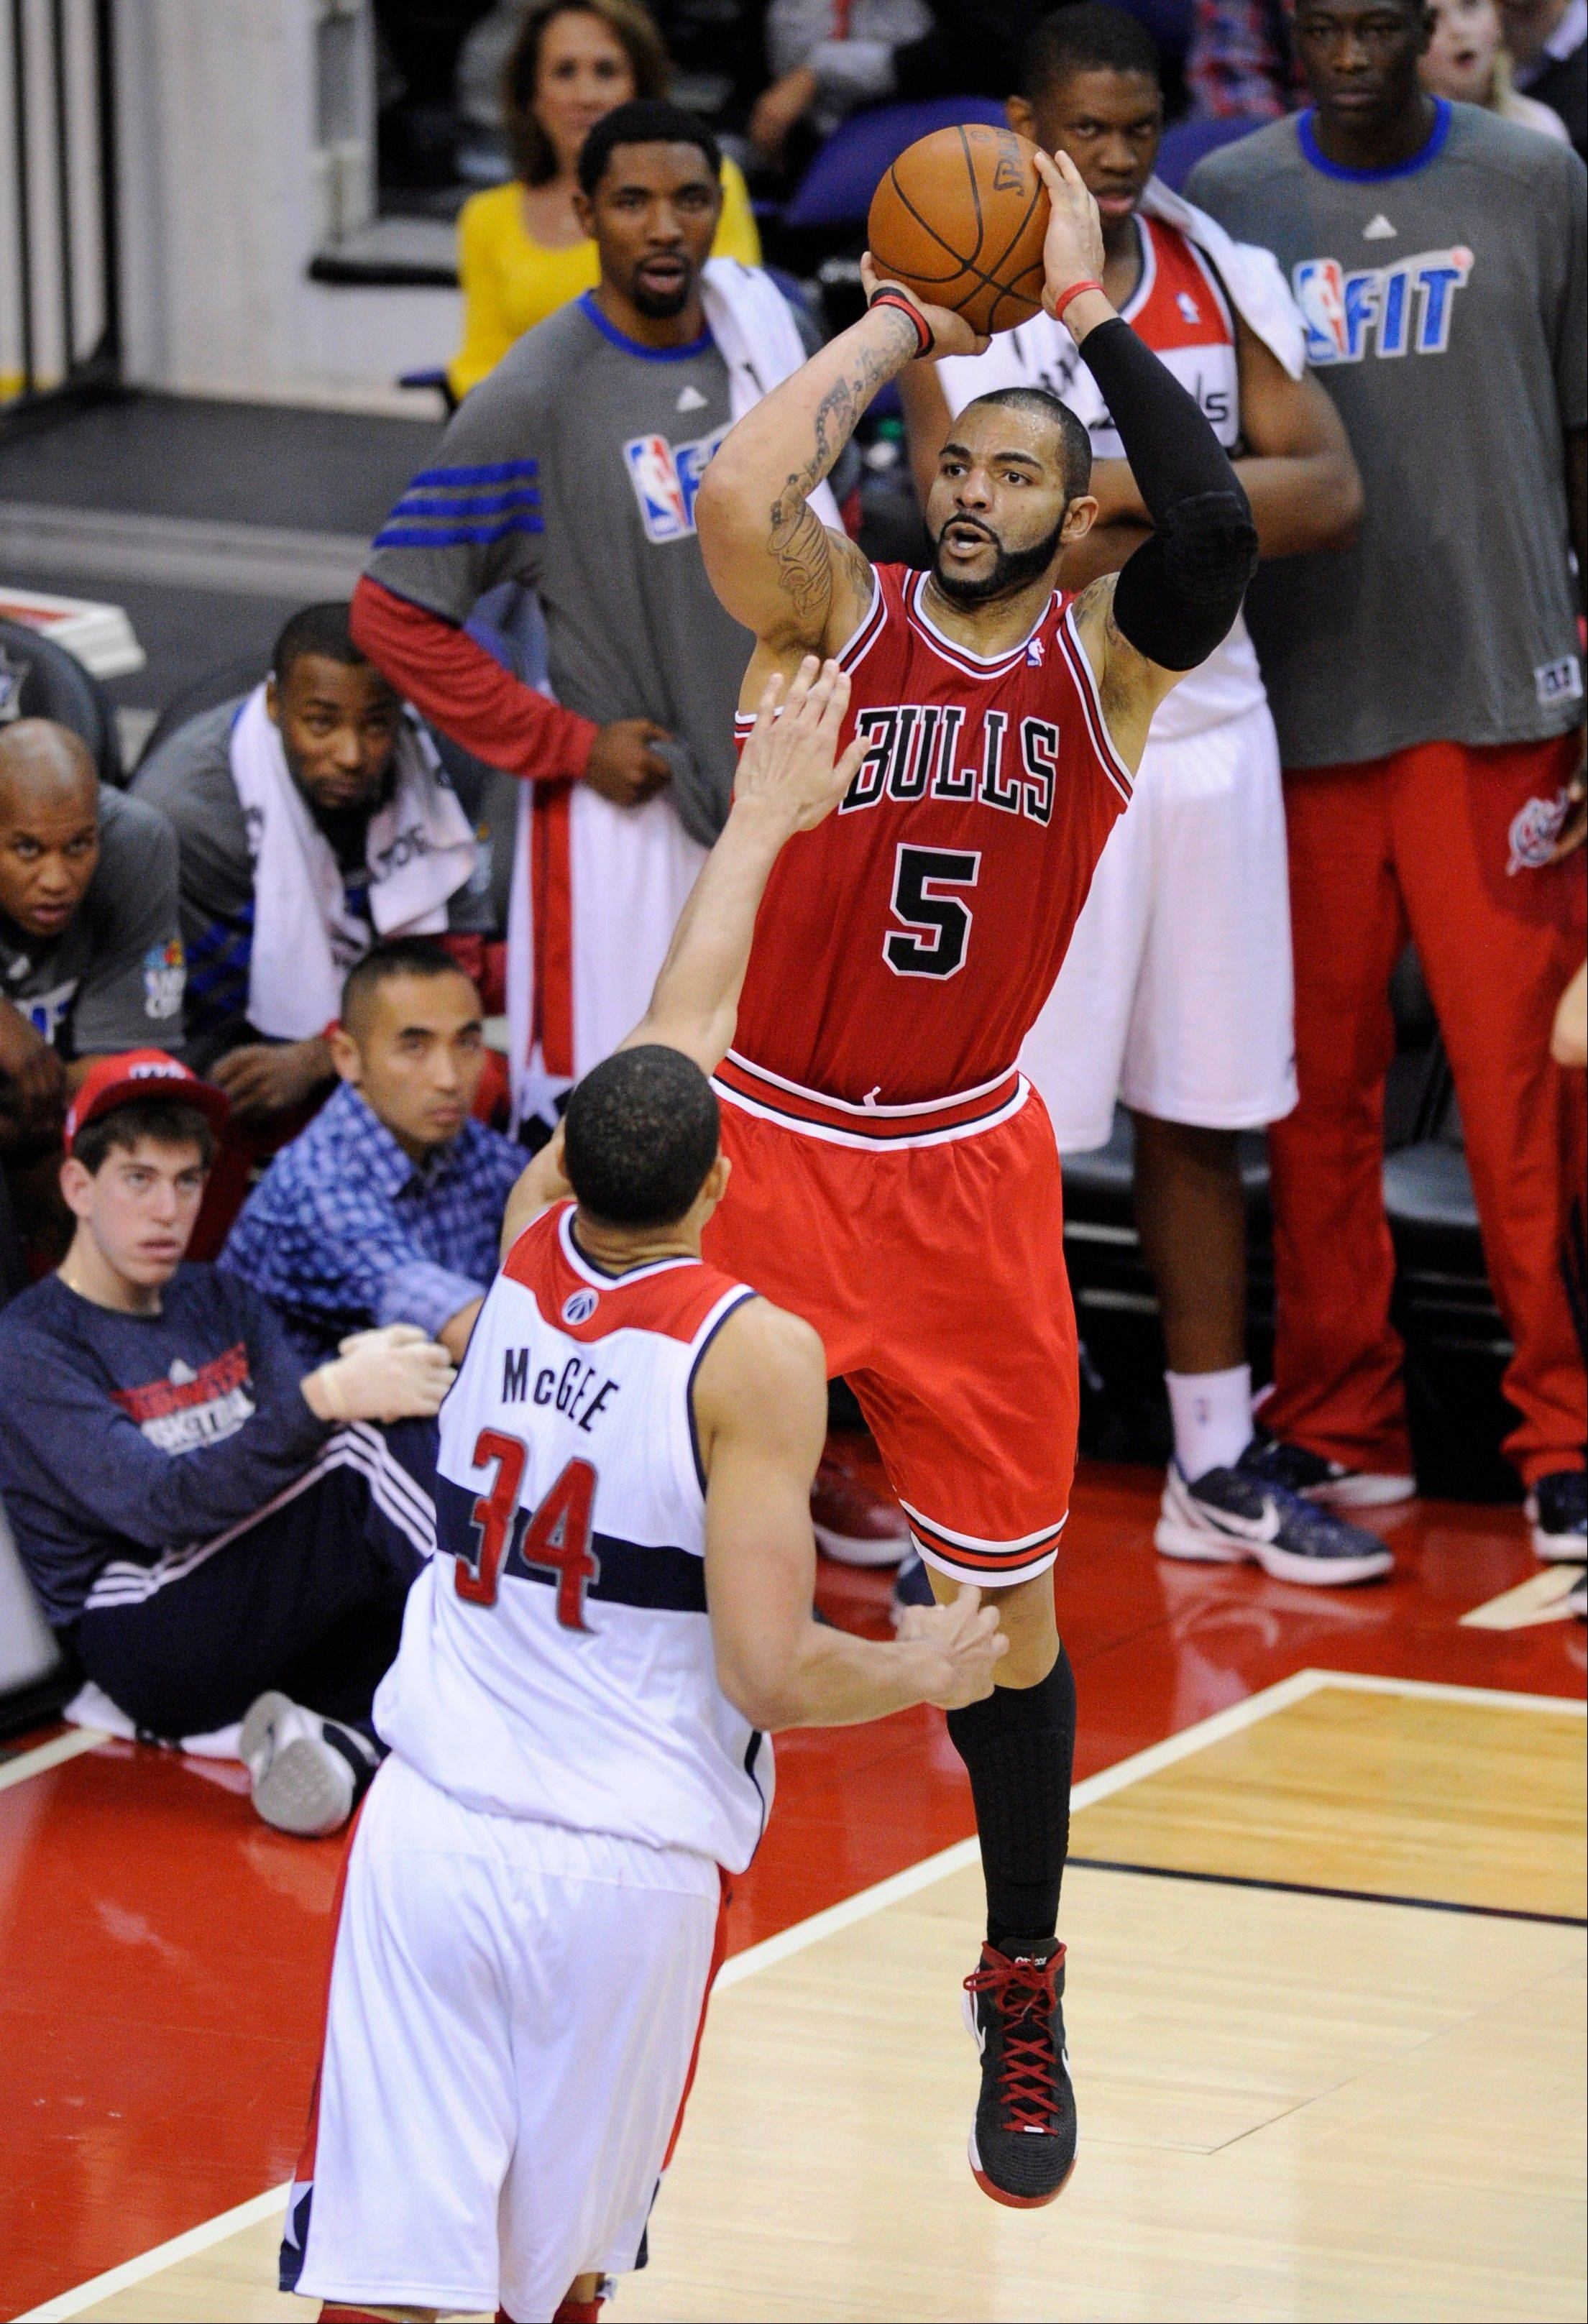 Chicago Bulls forward Carlos Boozer (5) shoots against Washington Wizards center JaVale McGee (34) during the second half of a game Monday in Washington. The Bulls won 98-88.